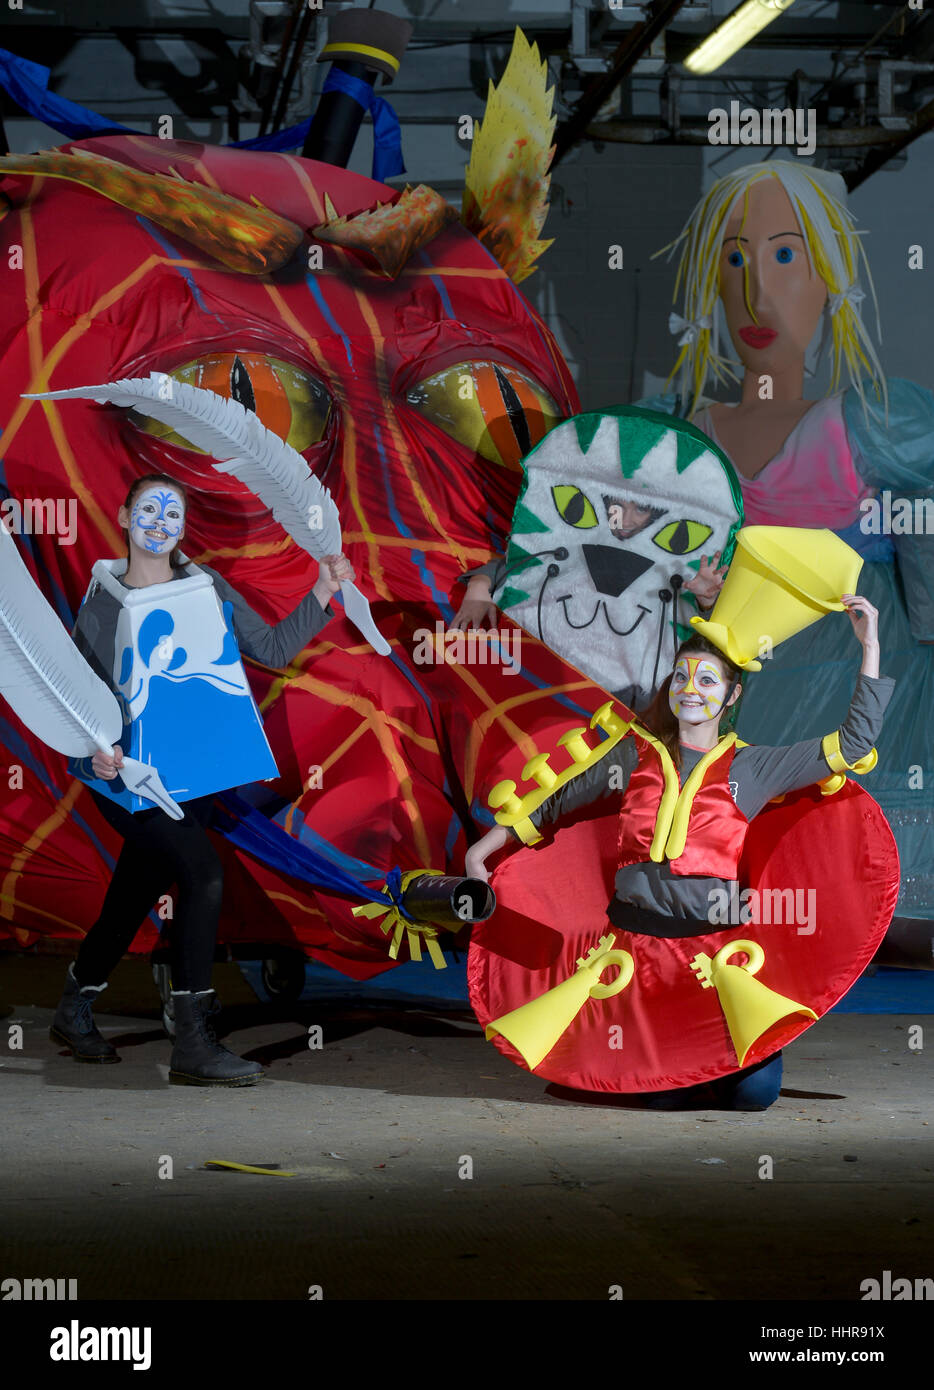 Big Burns Supper Carnival, Dumfries, Scotland. Volunteers from the Big Burns Supper prepare floats and costumes - Stock Image